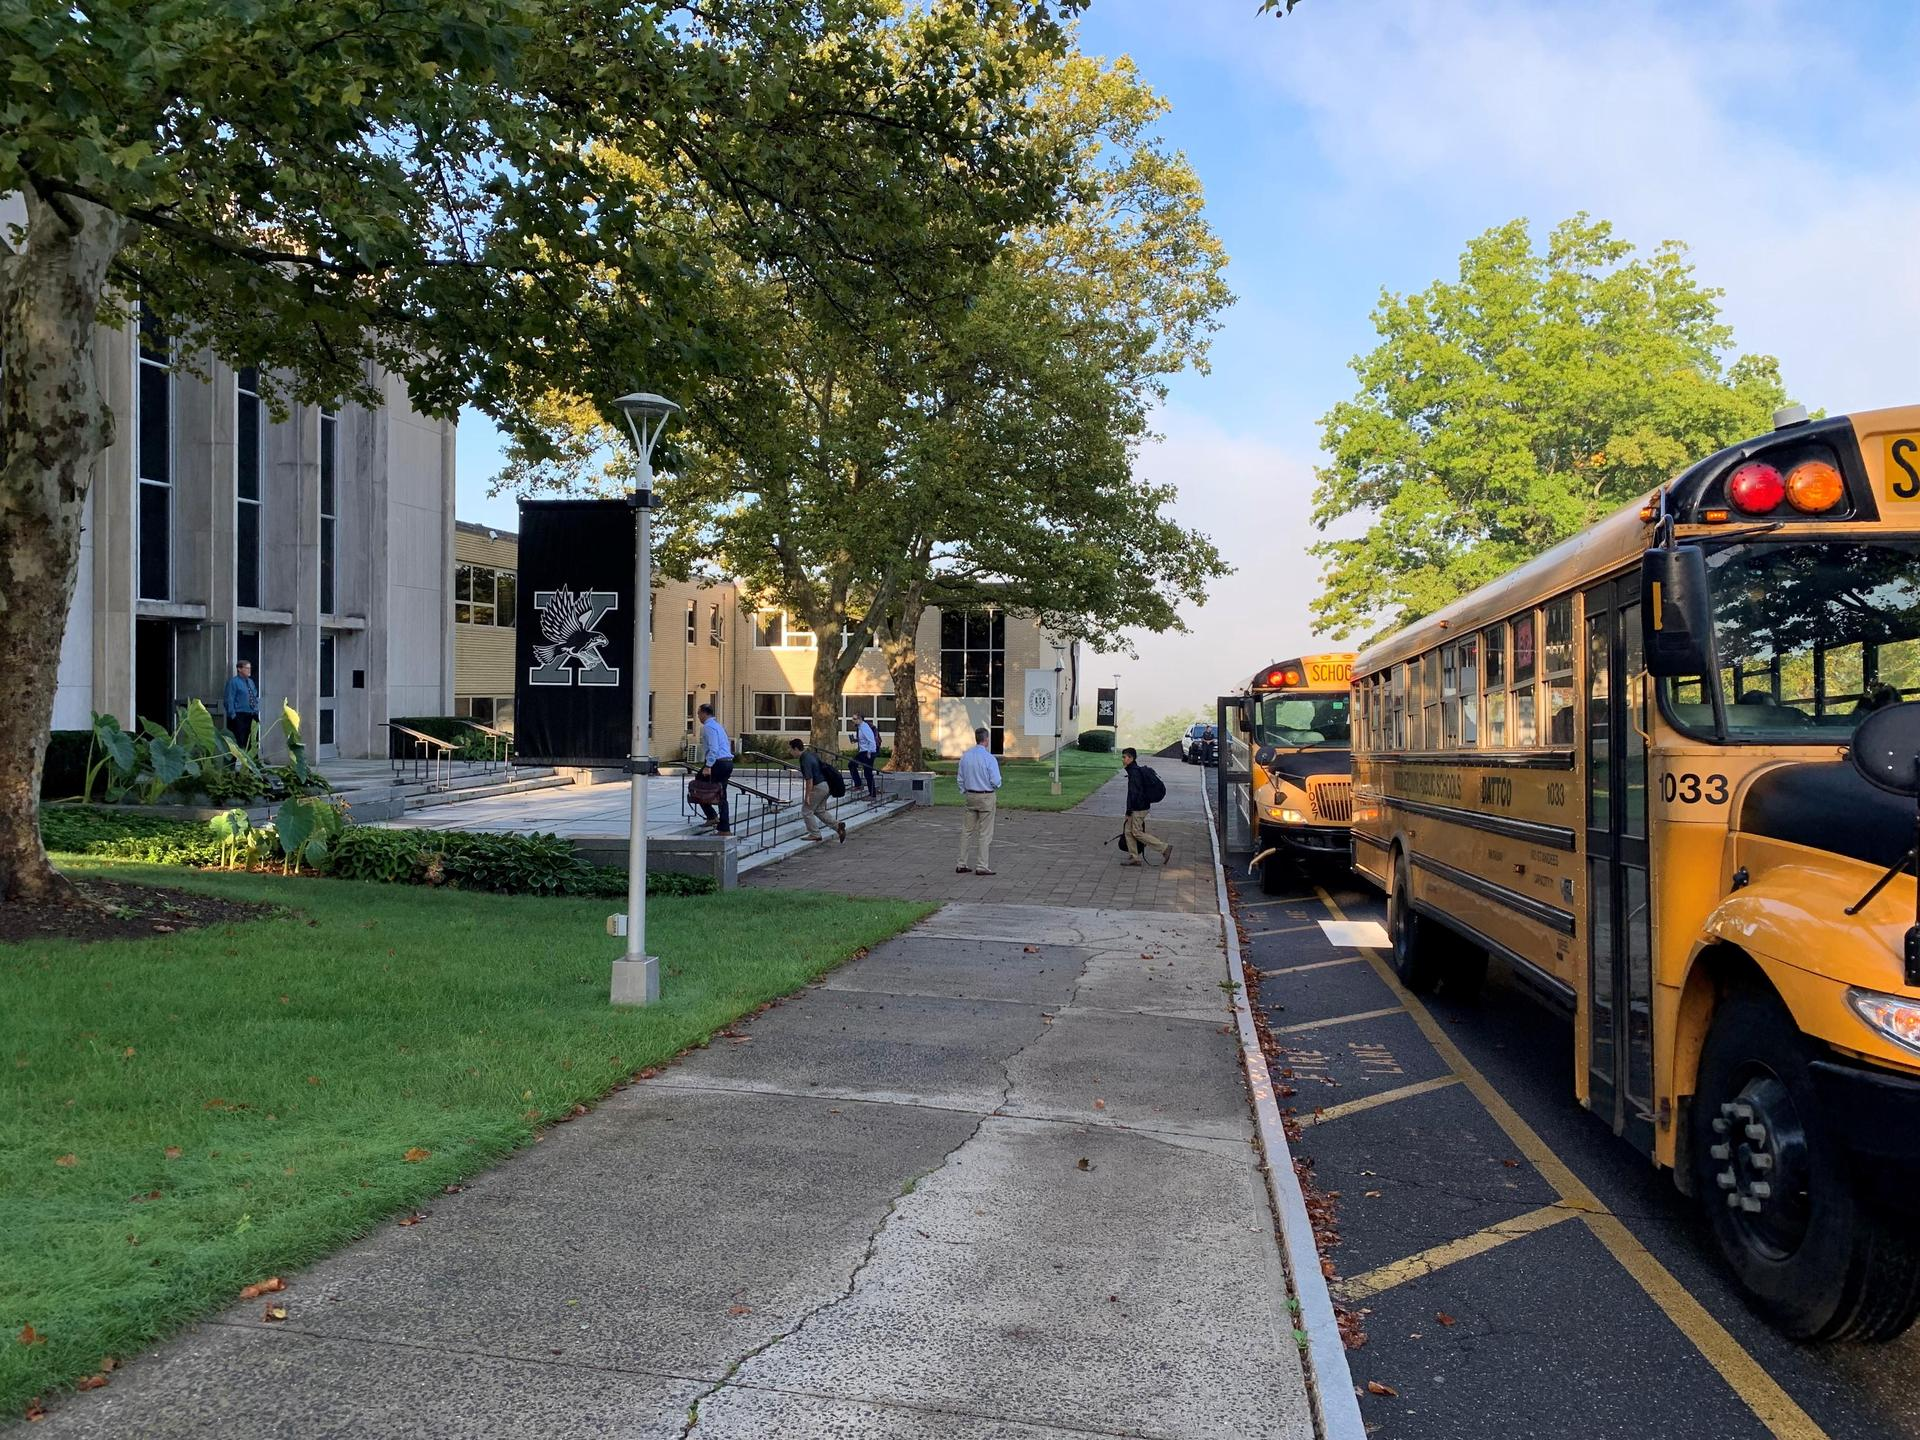 Buses Arriving at Xavier